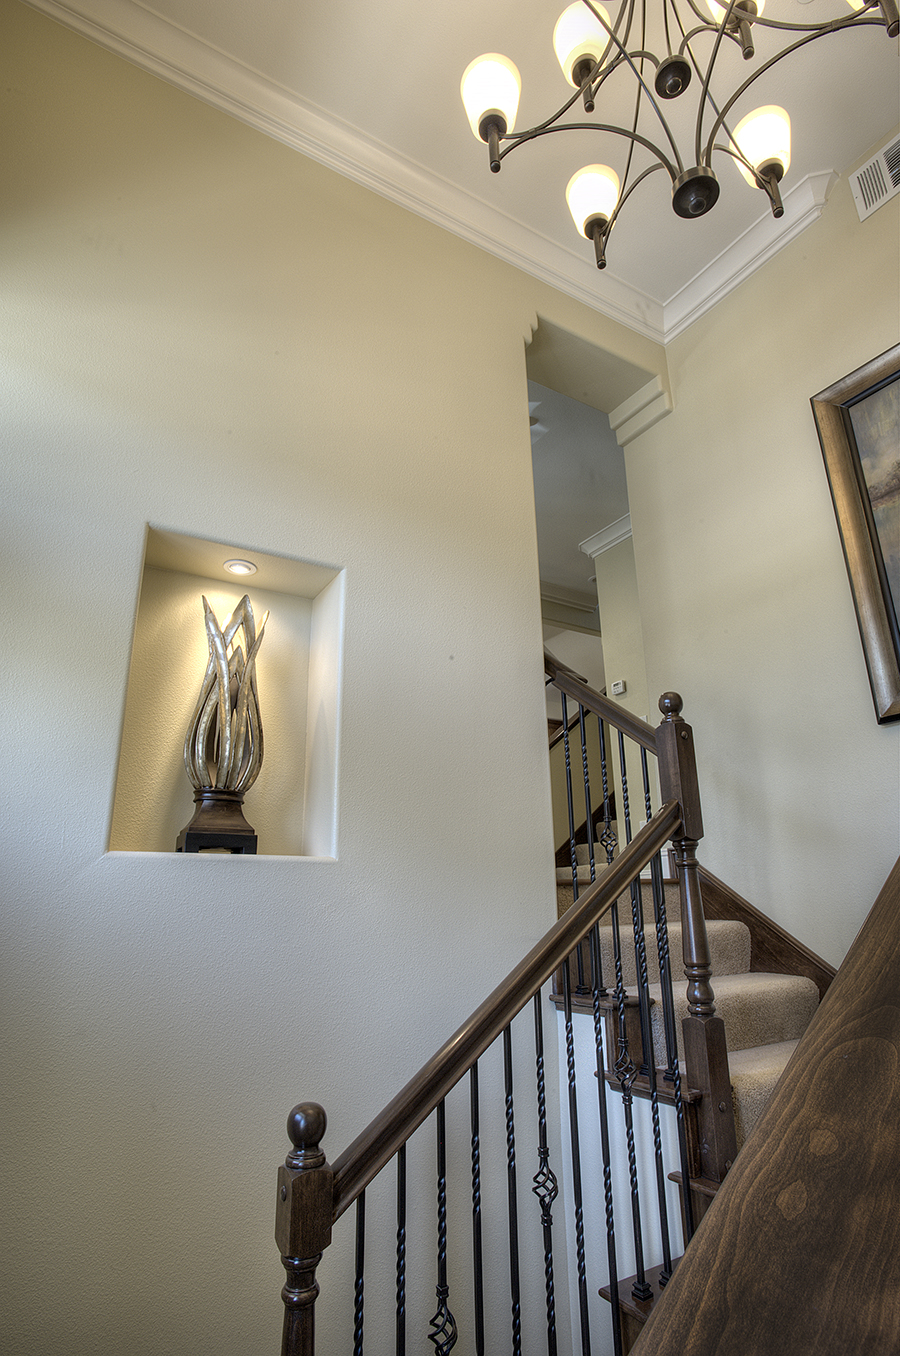 Stairway with chandelier above and a figurine